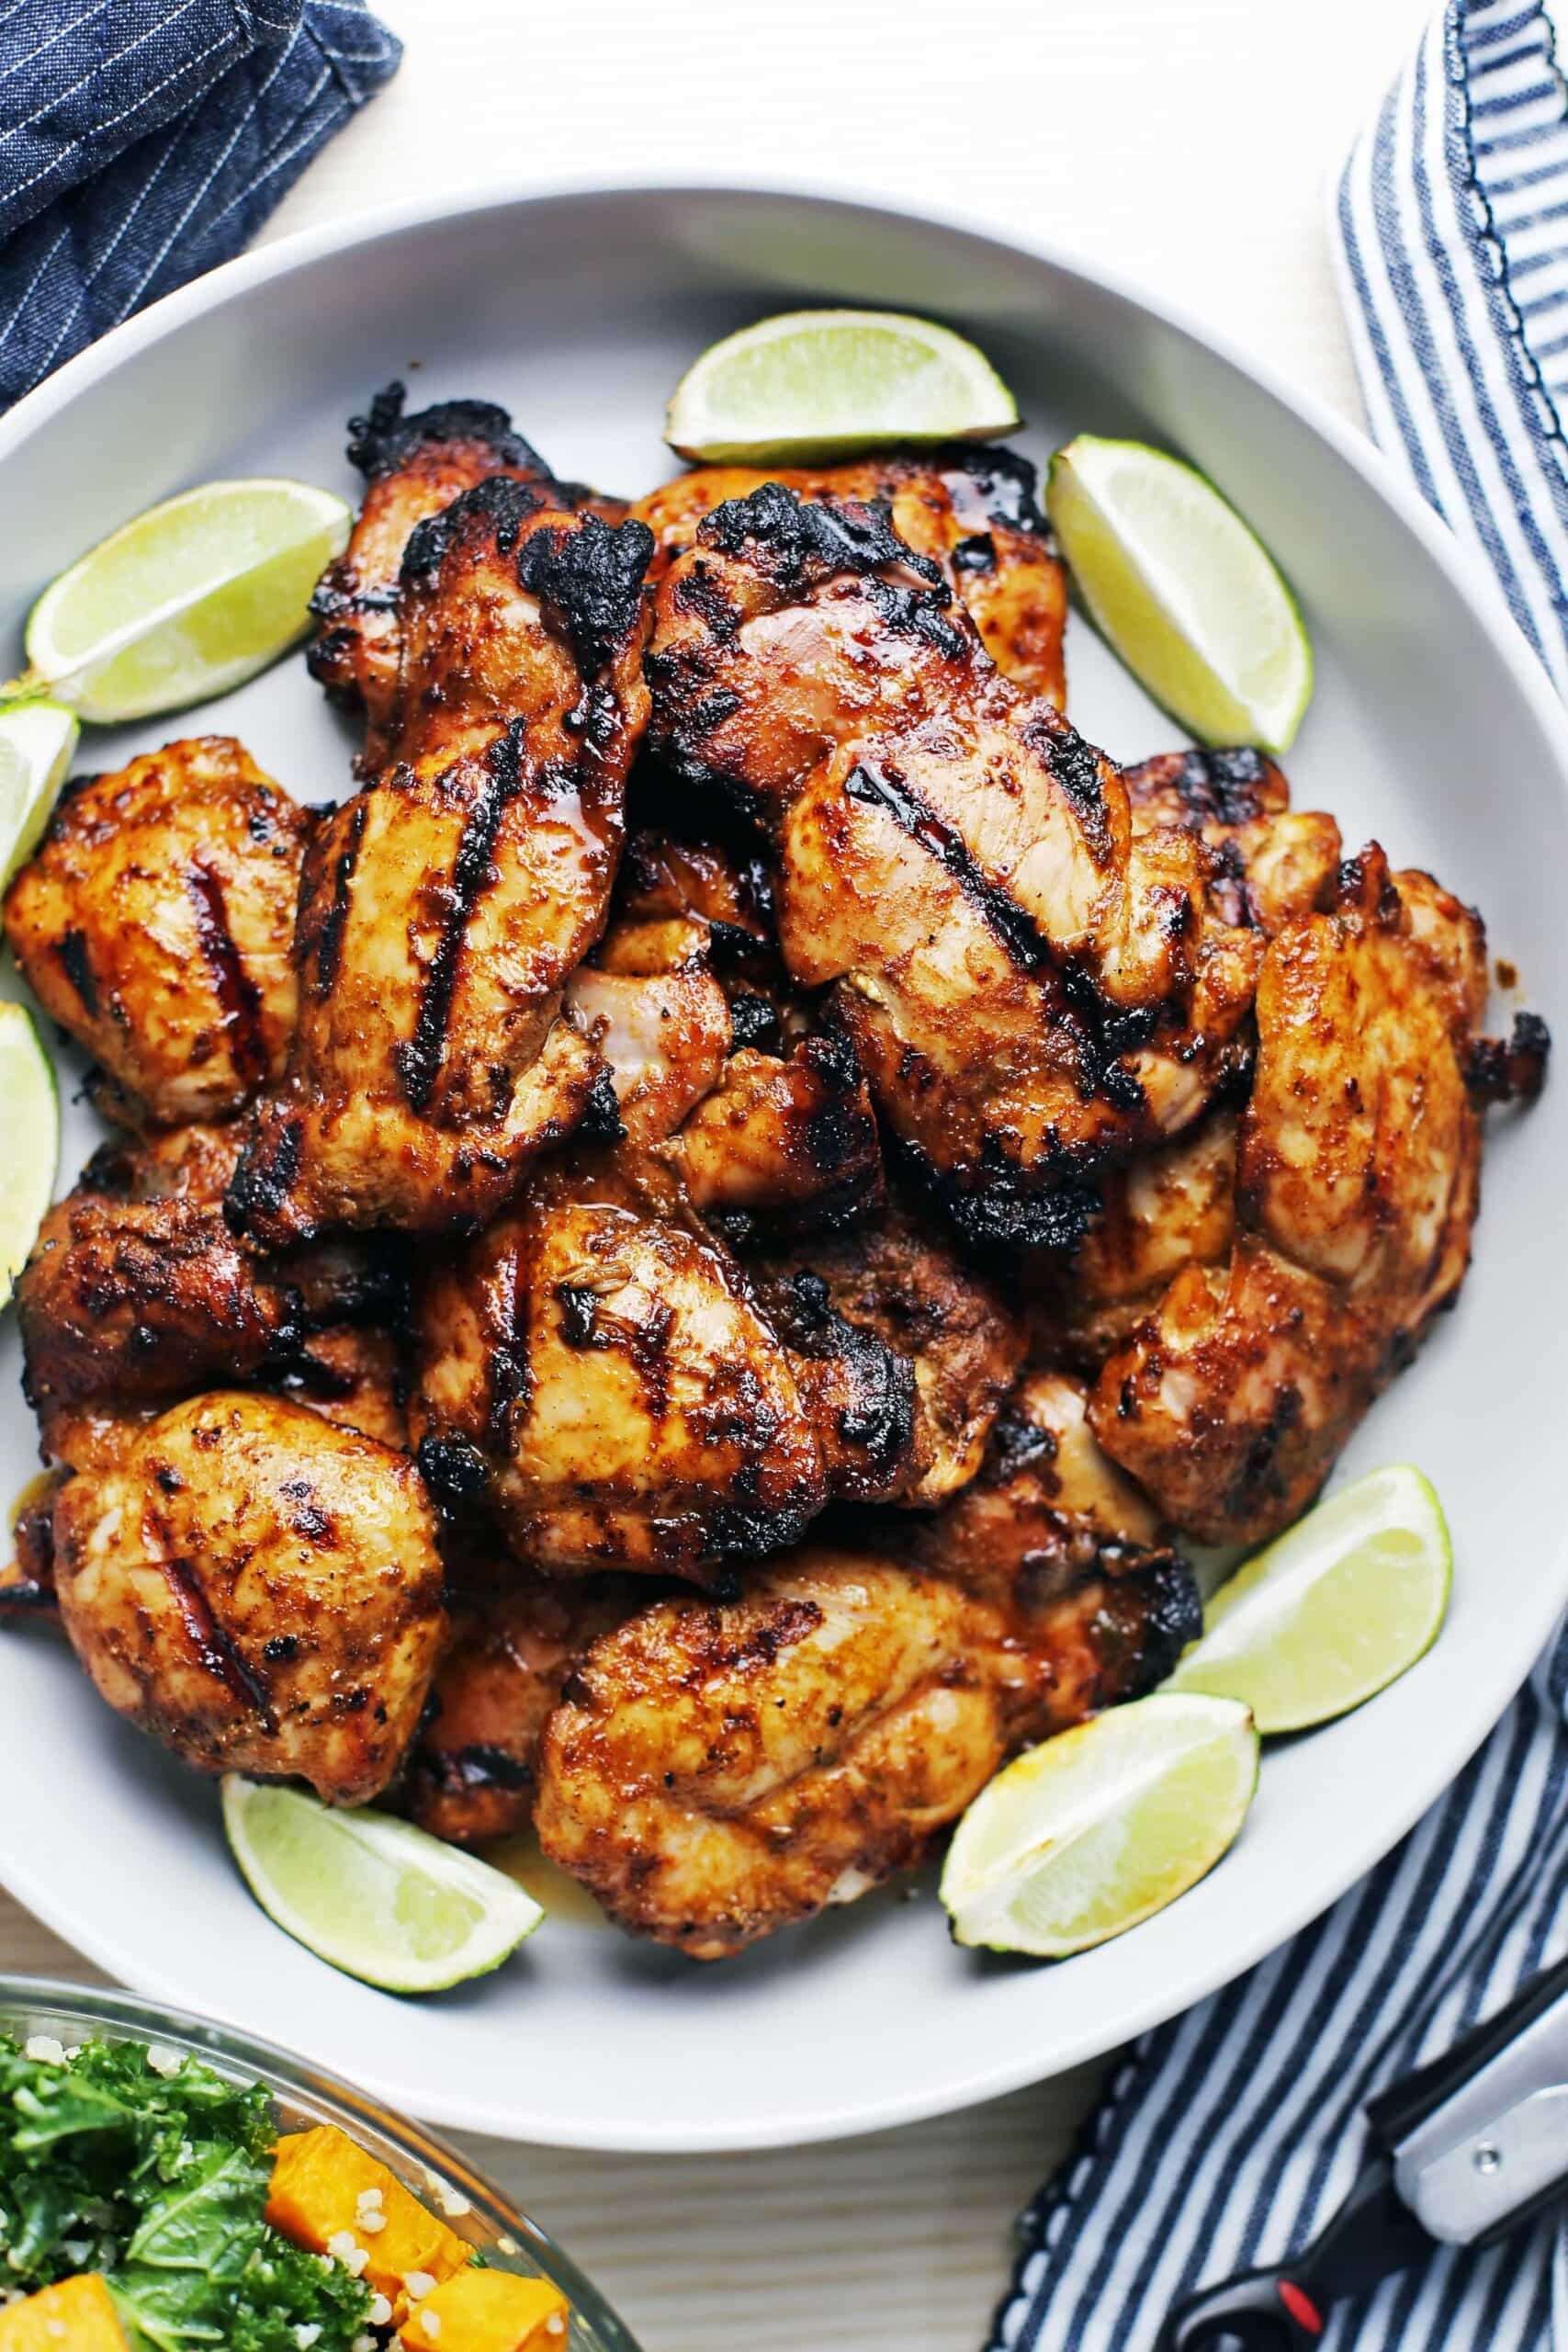 Chili Lime Chicken Recipe  Grilled Chili Lime Chicken Thighs Yay For Food